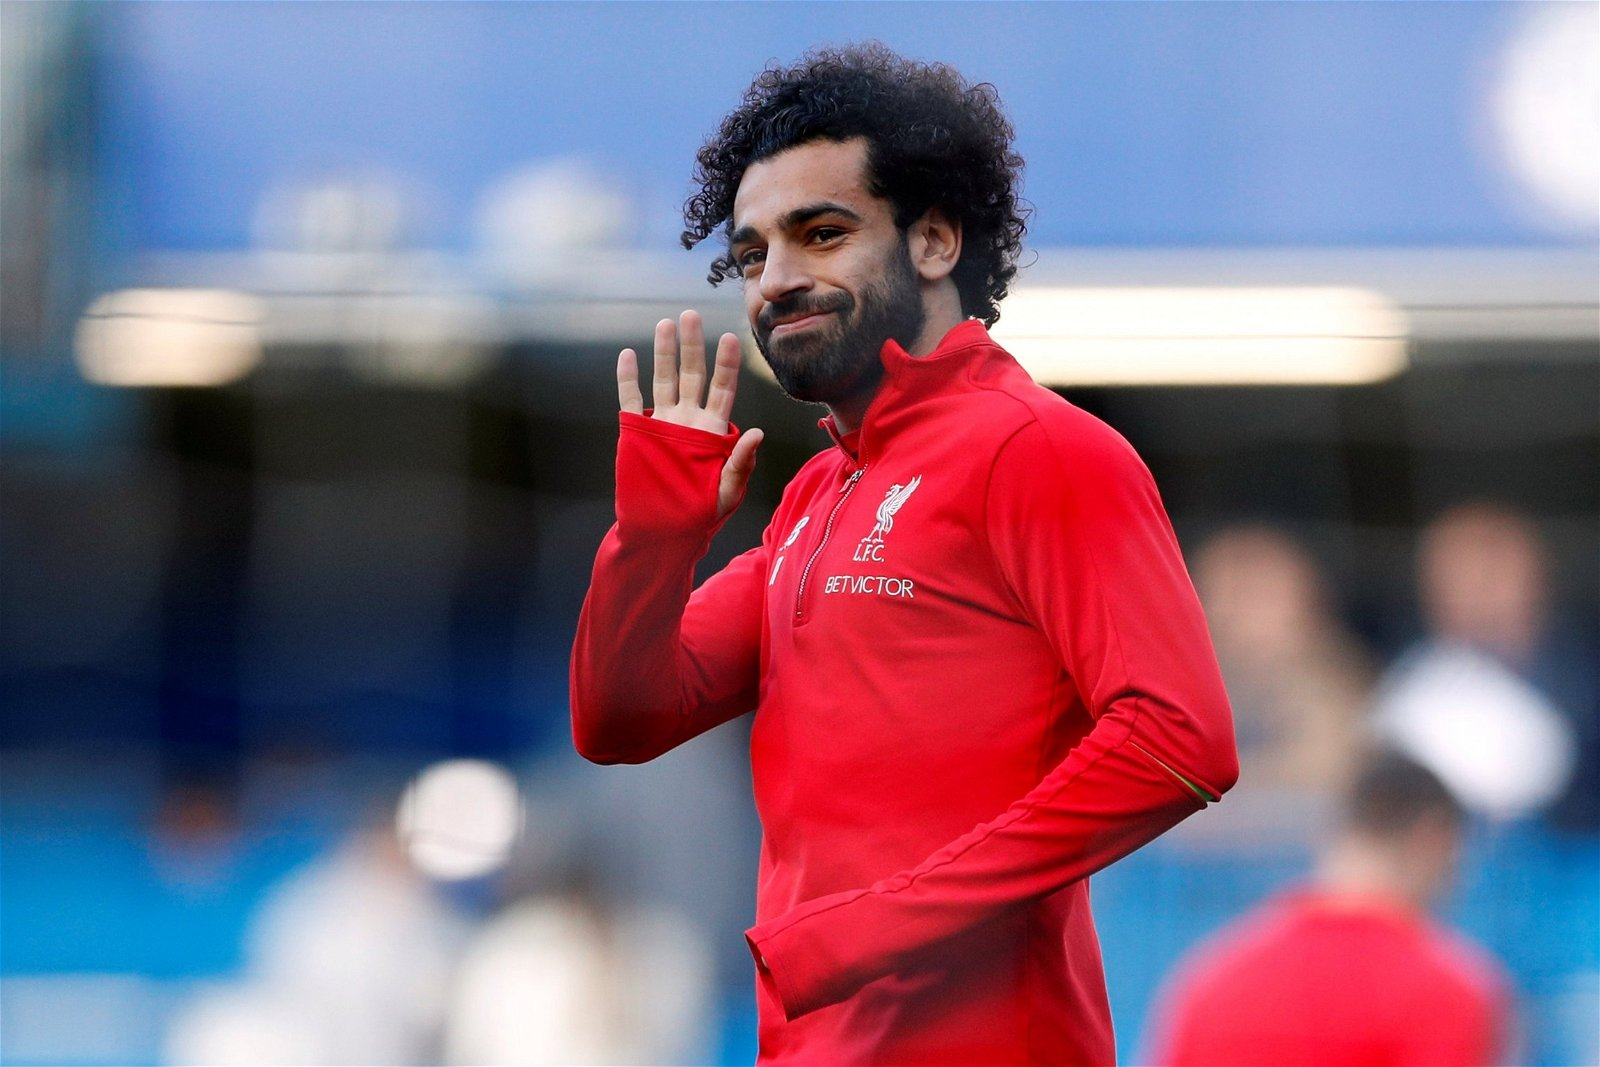 Mohamed Salah warms up for Chelsea clash